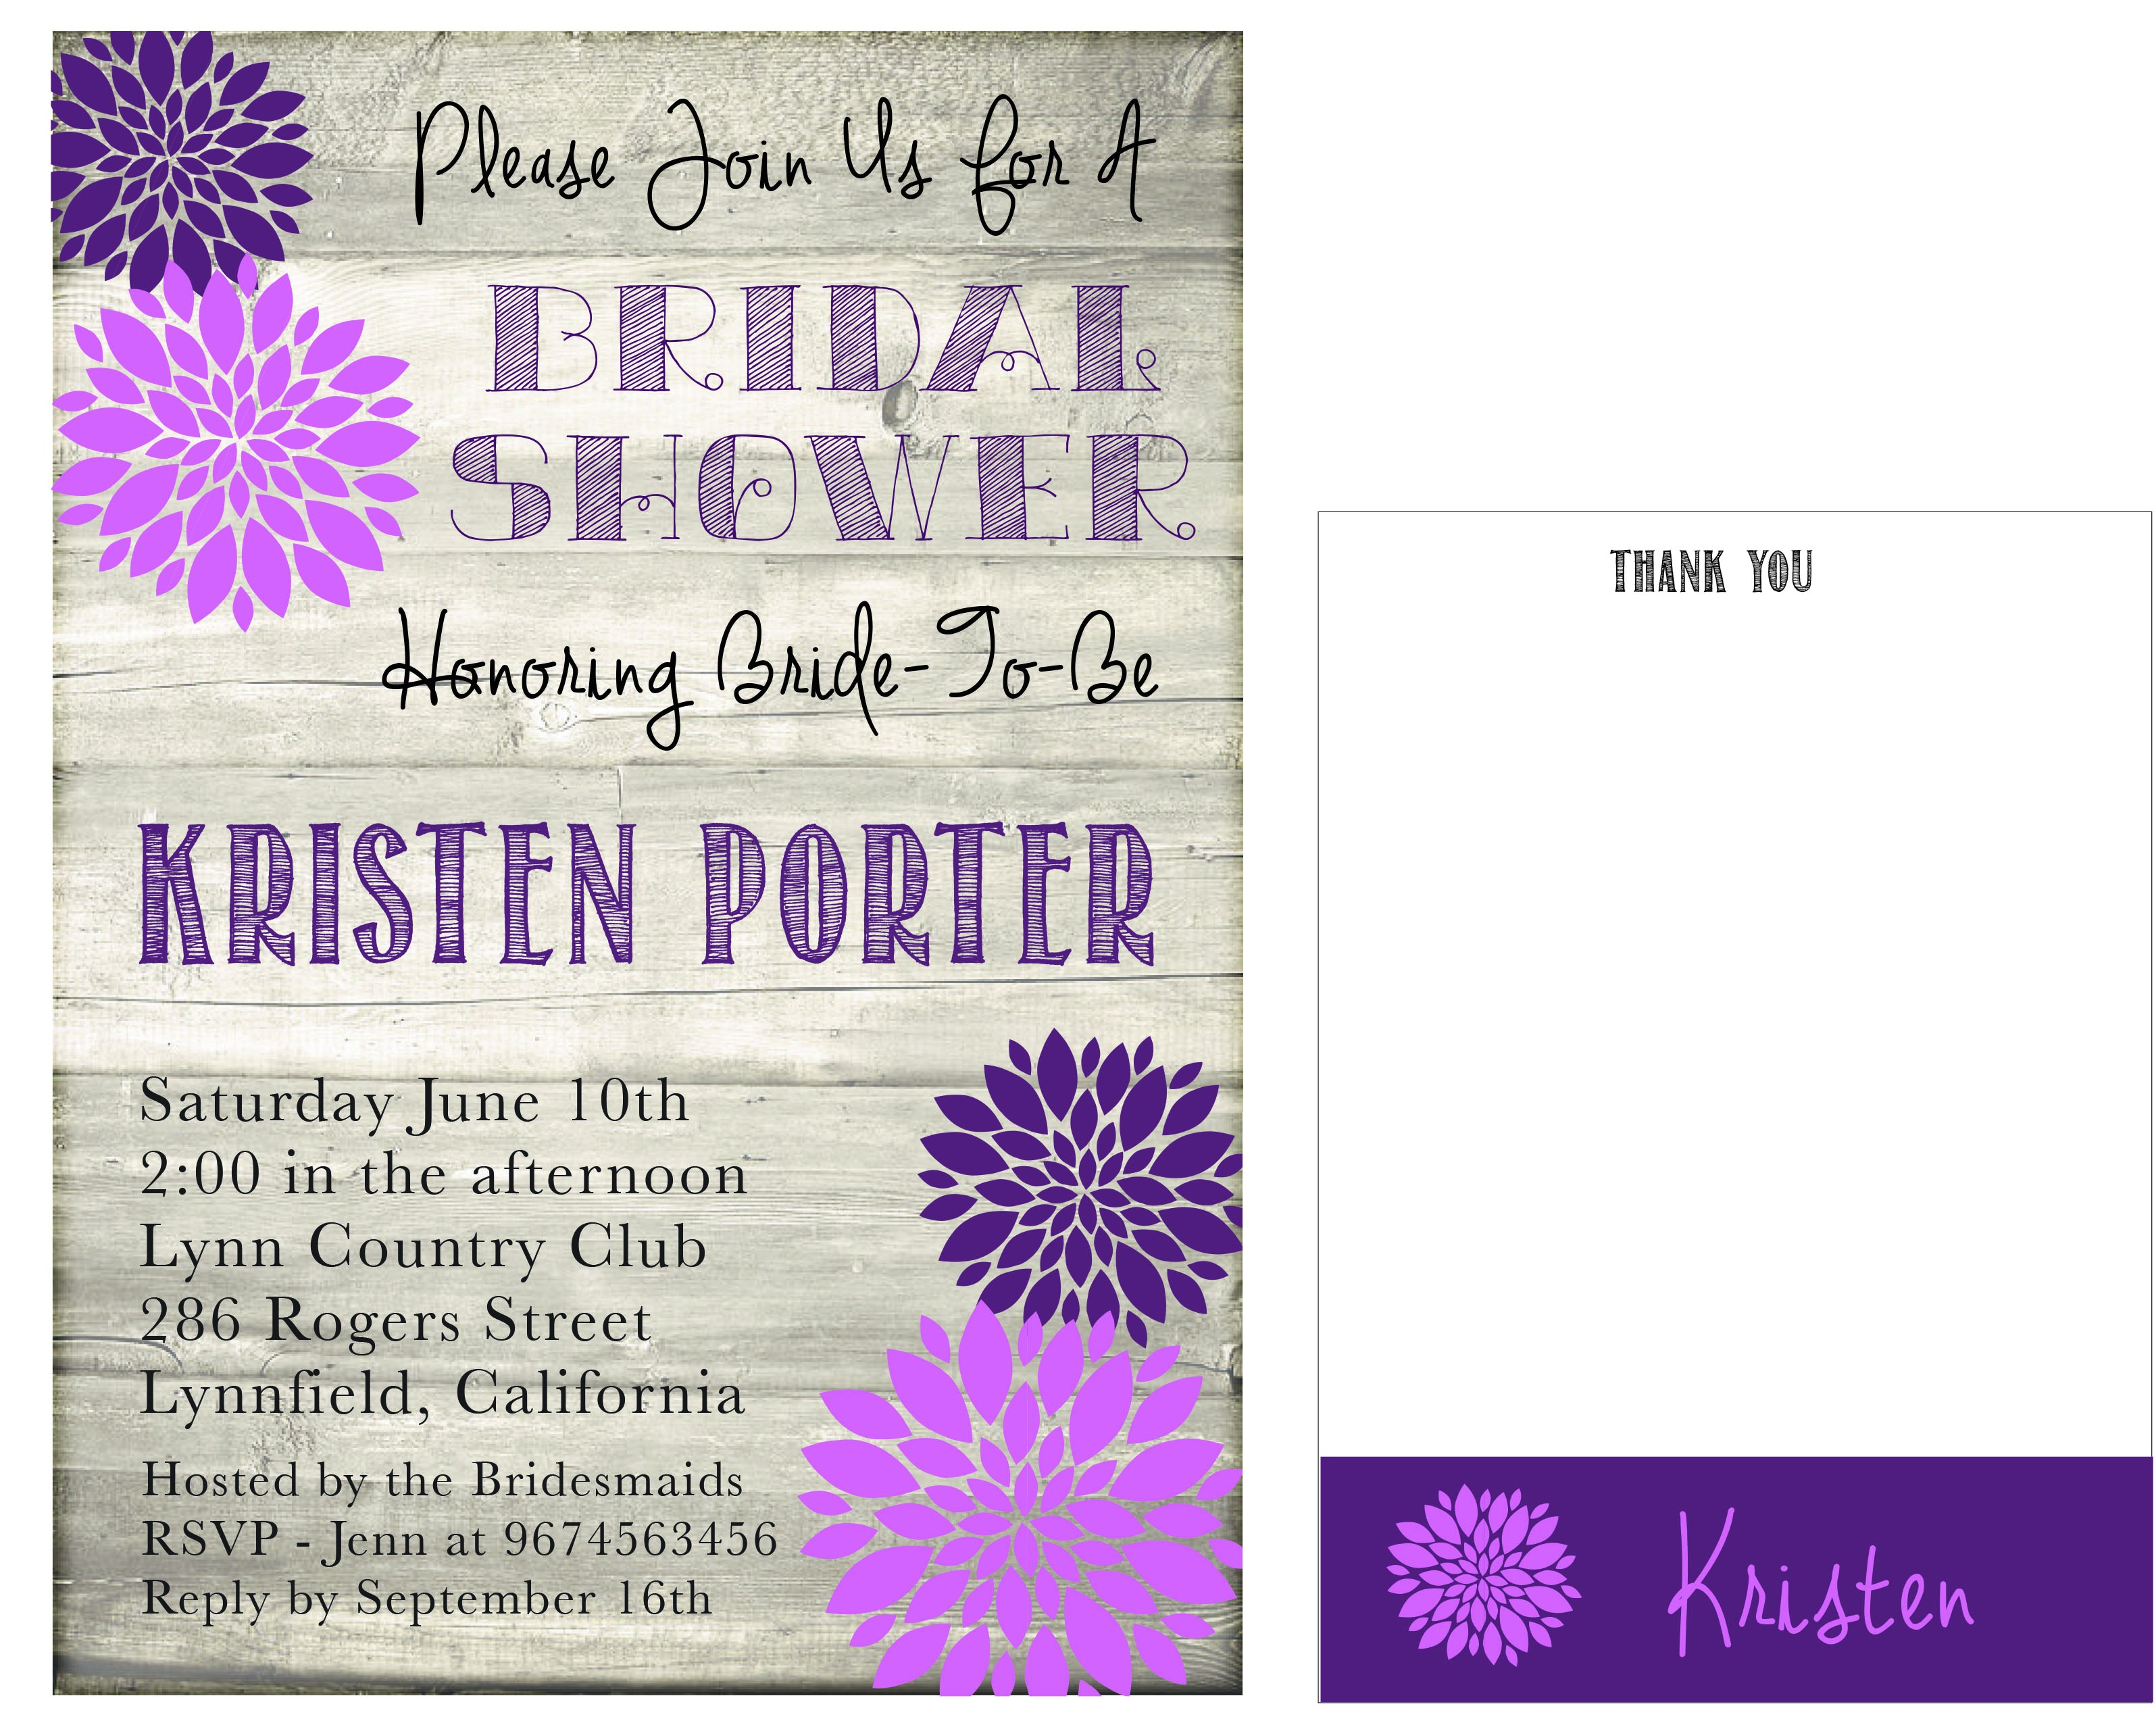 papyrus bridal shower invitations